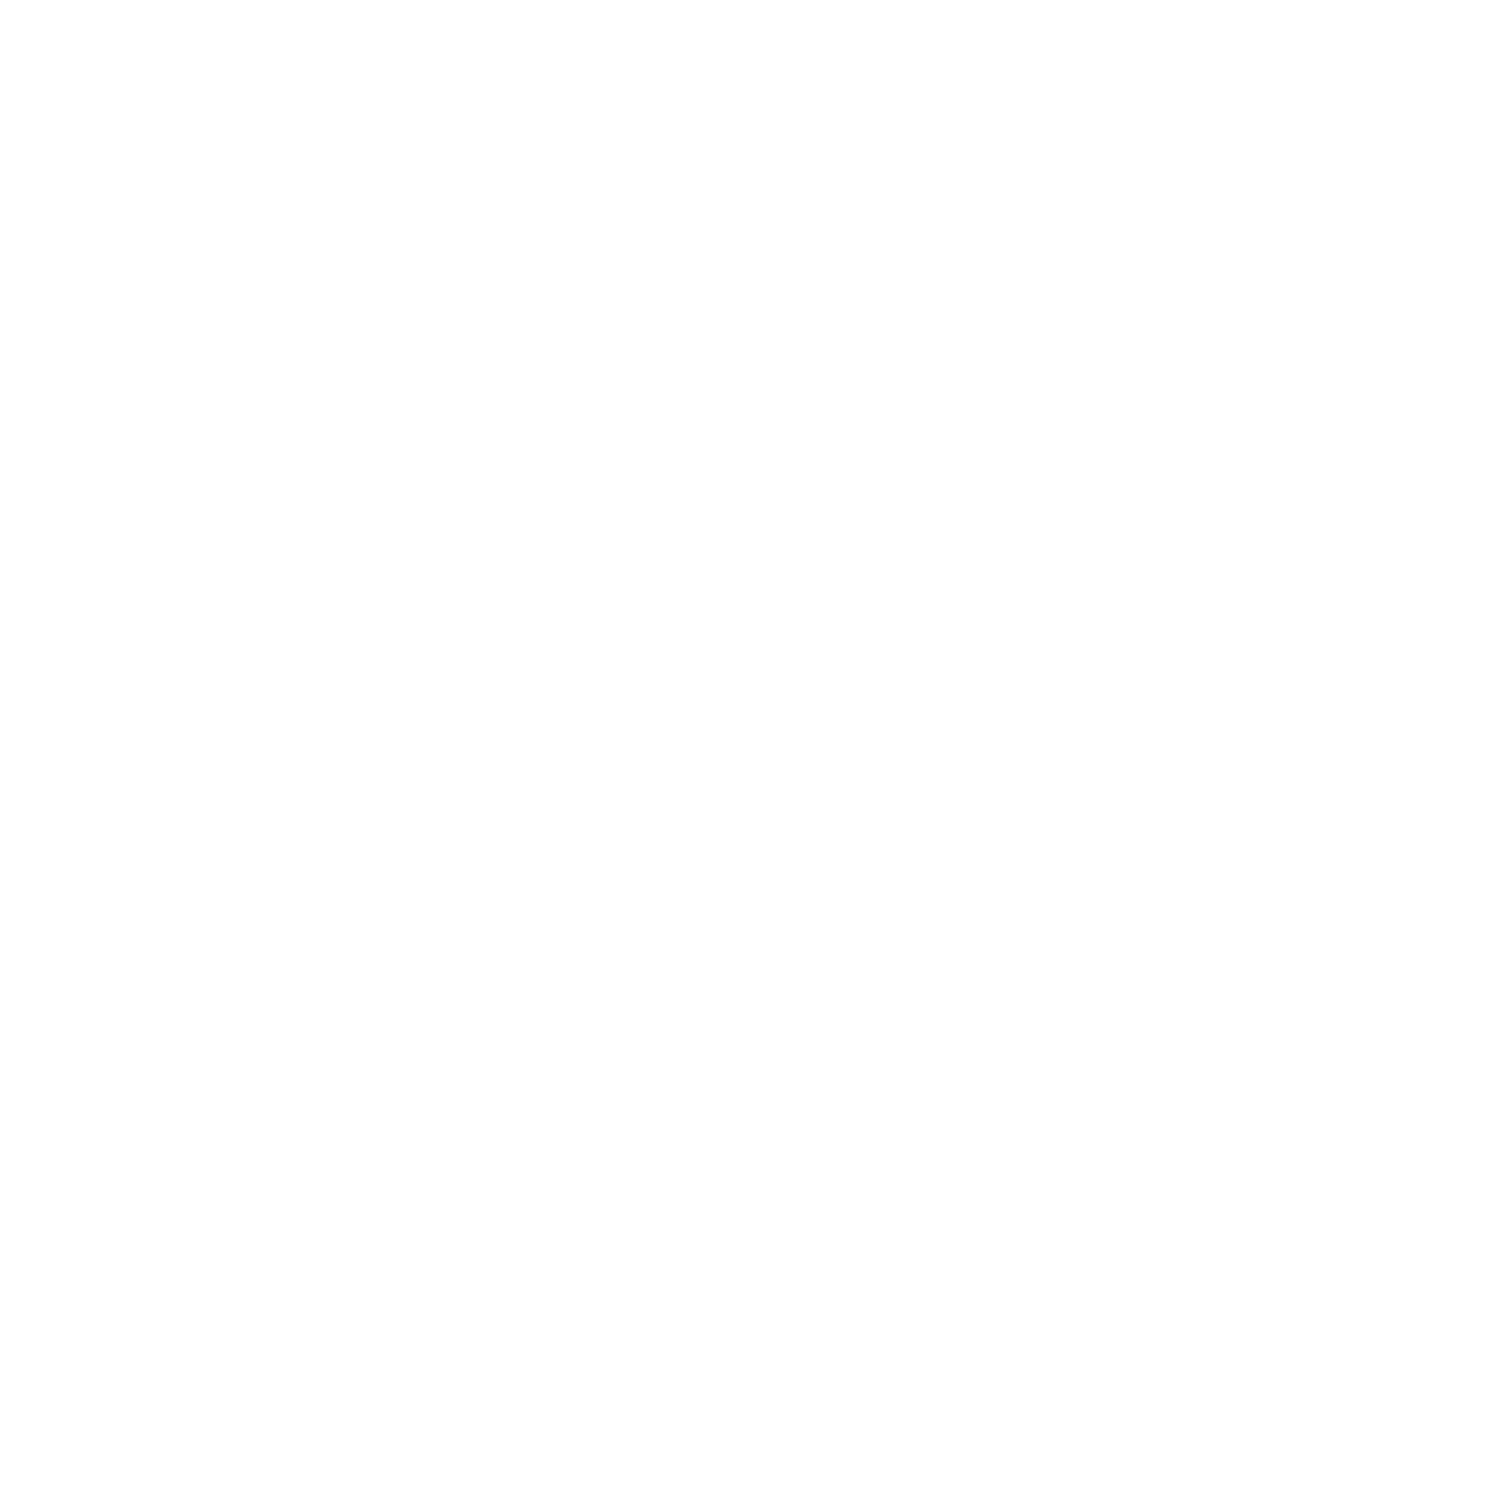 International Business Organization